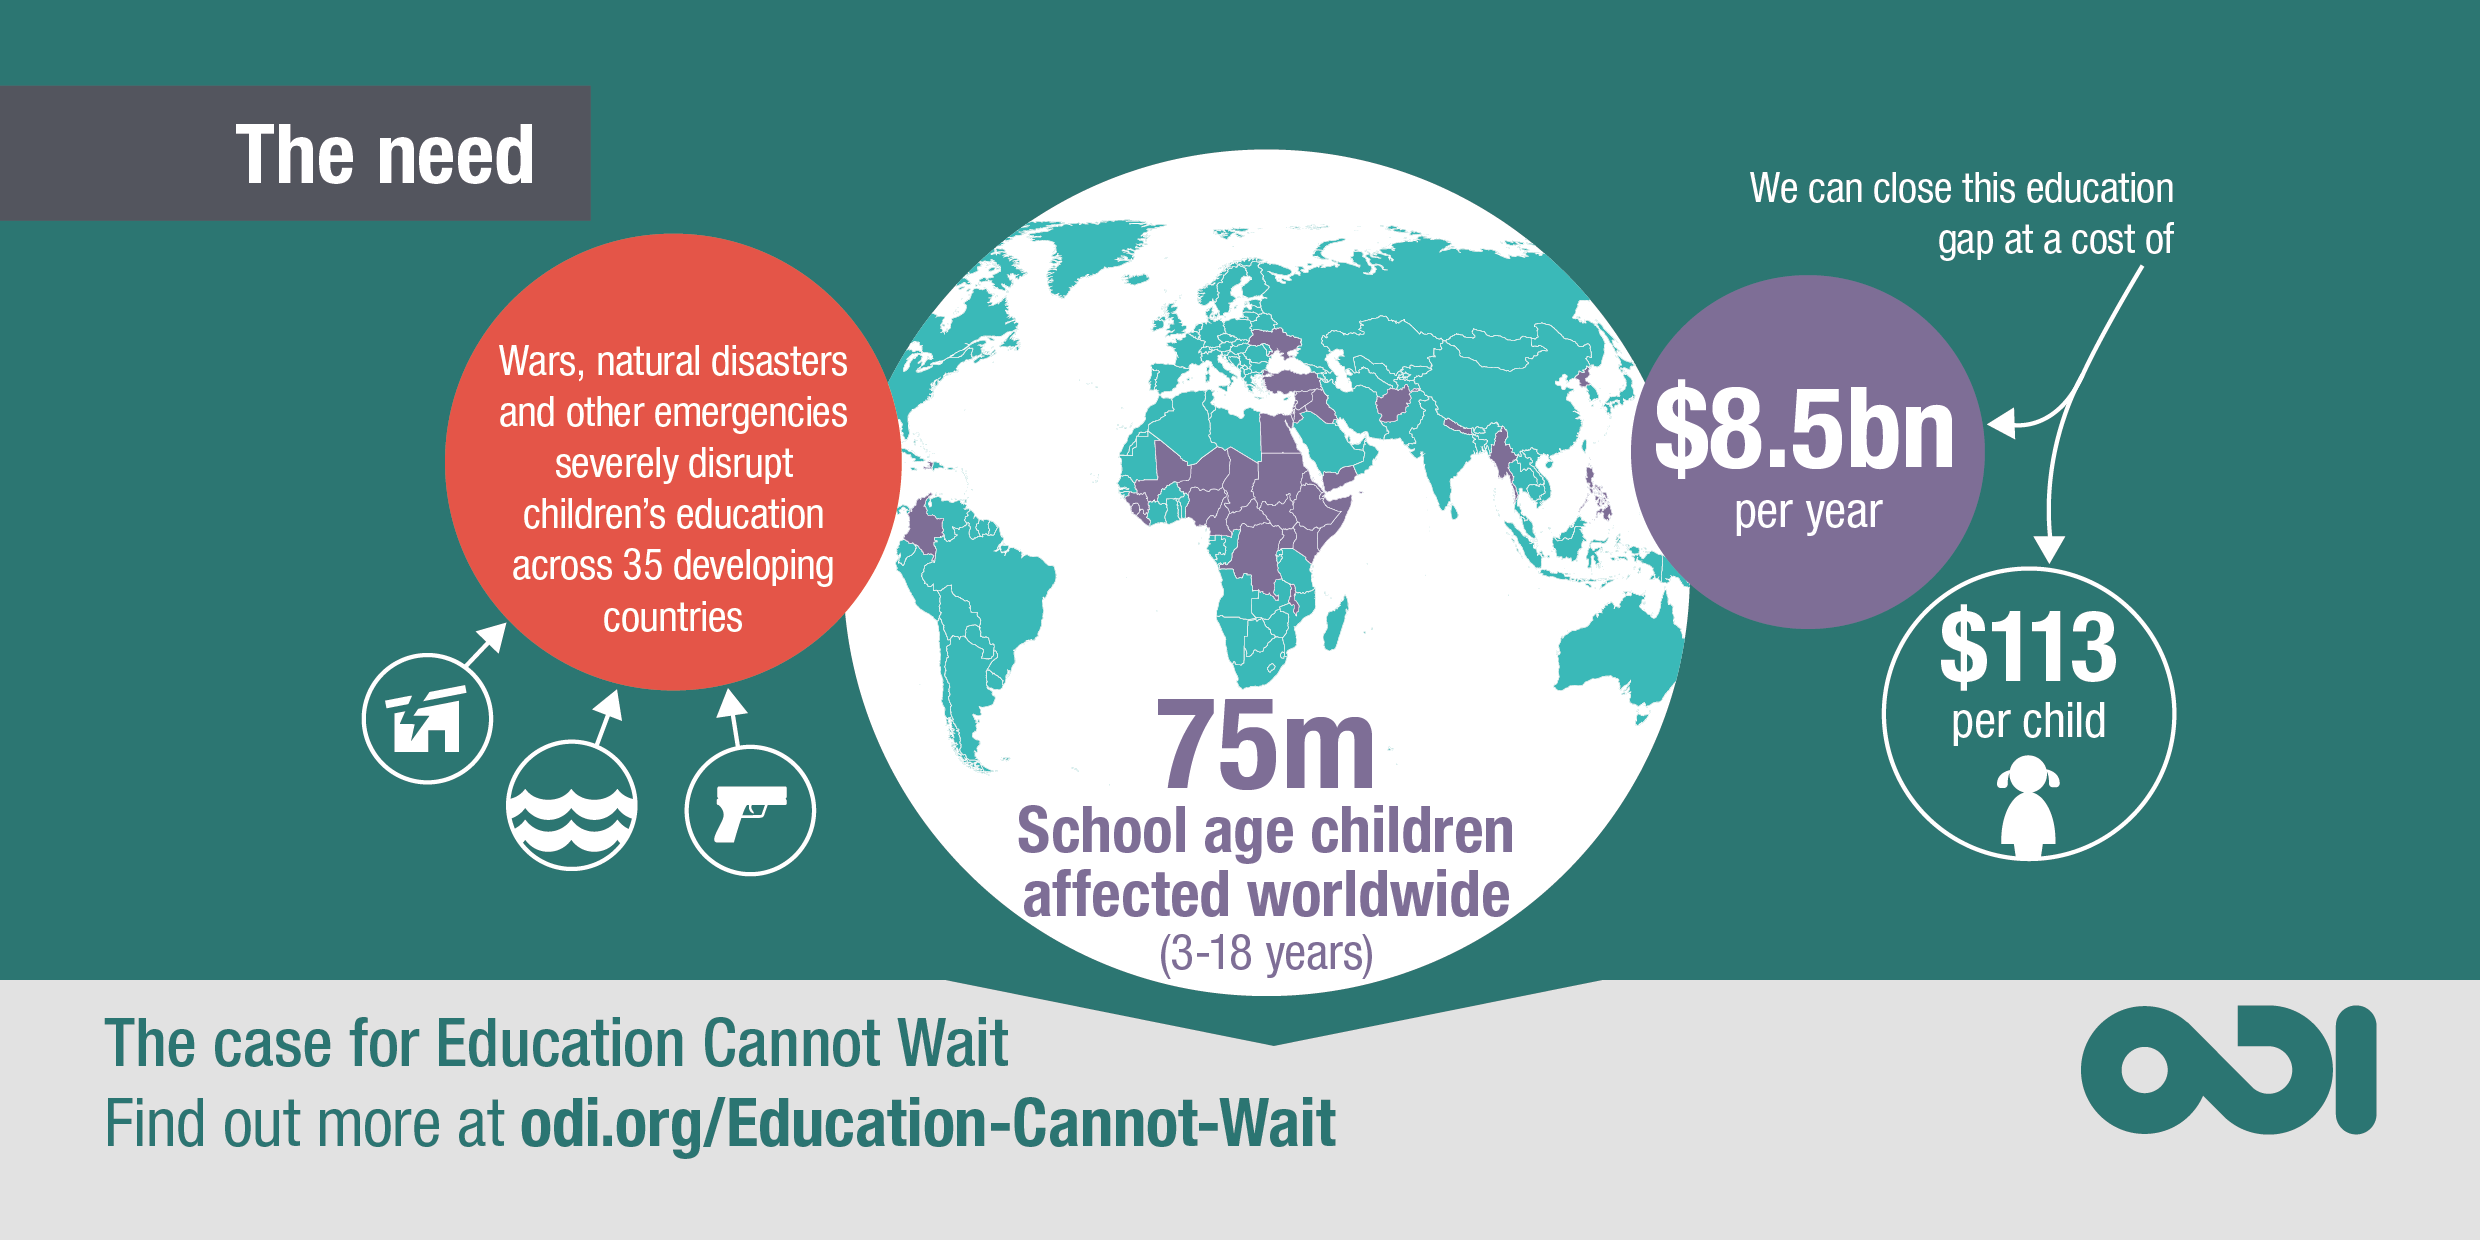 The case for Education Cannot Wait